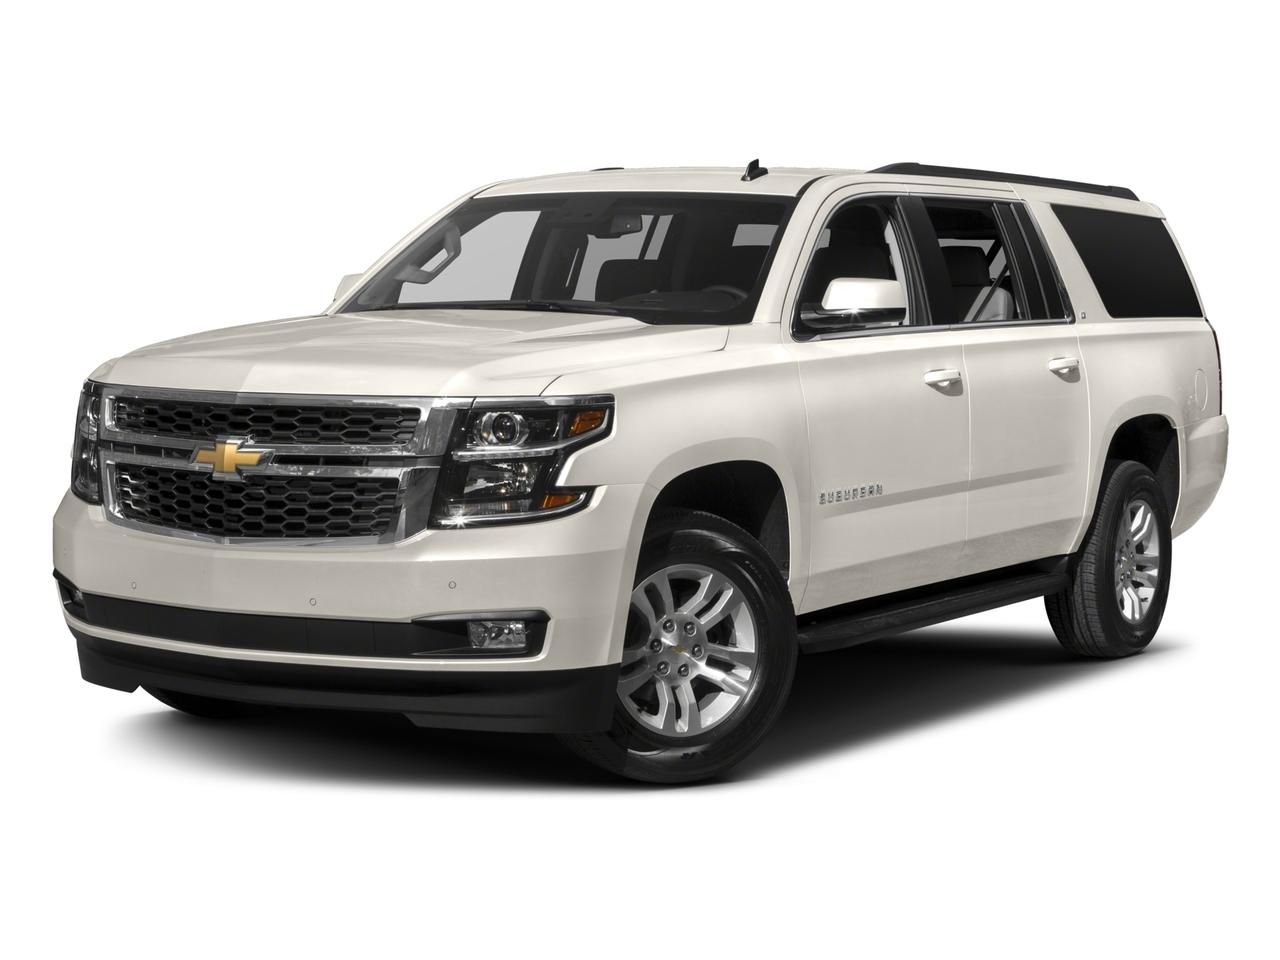 2017 Chevrolet Suburban Vehicle Photo in Nashua, NH 03060